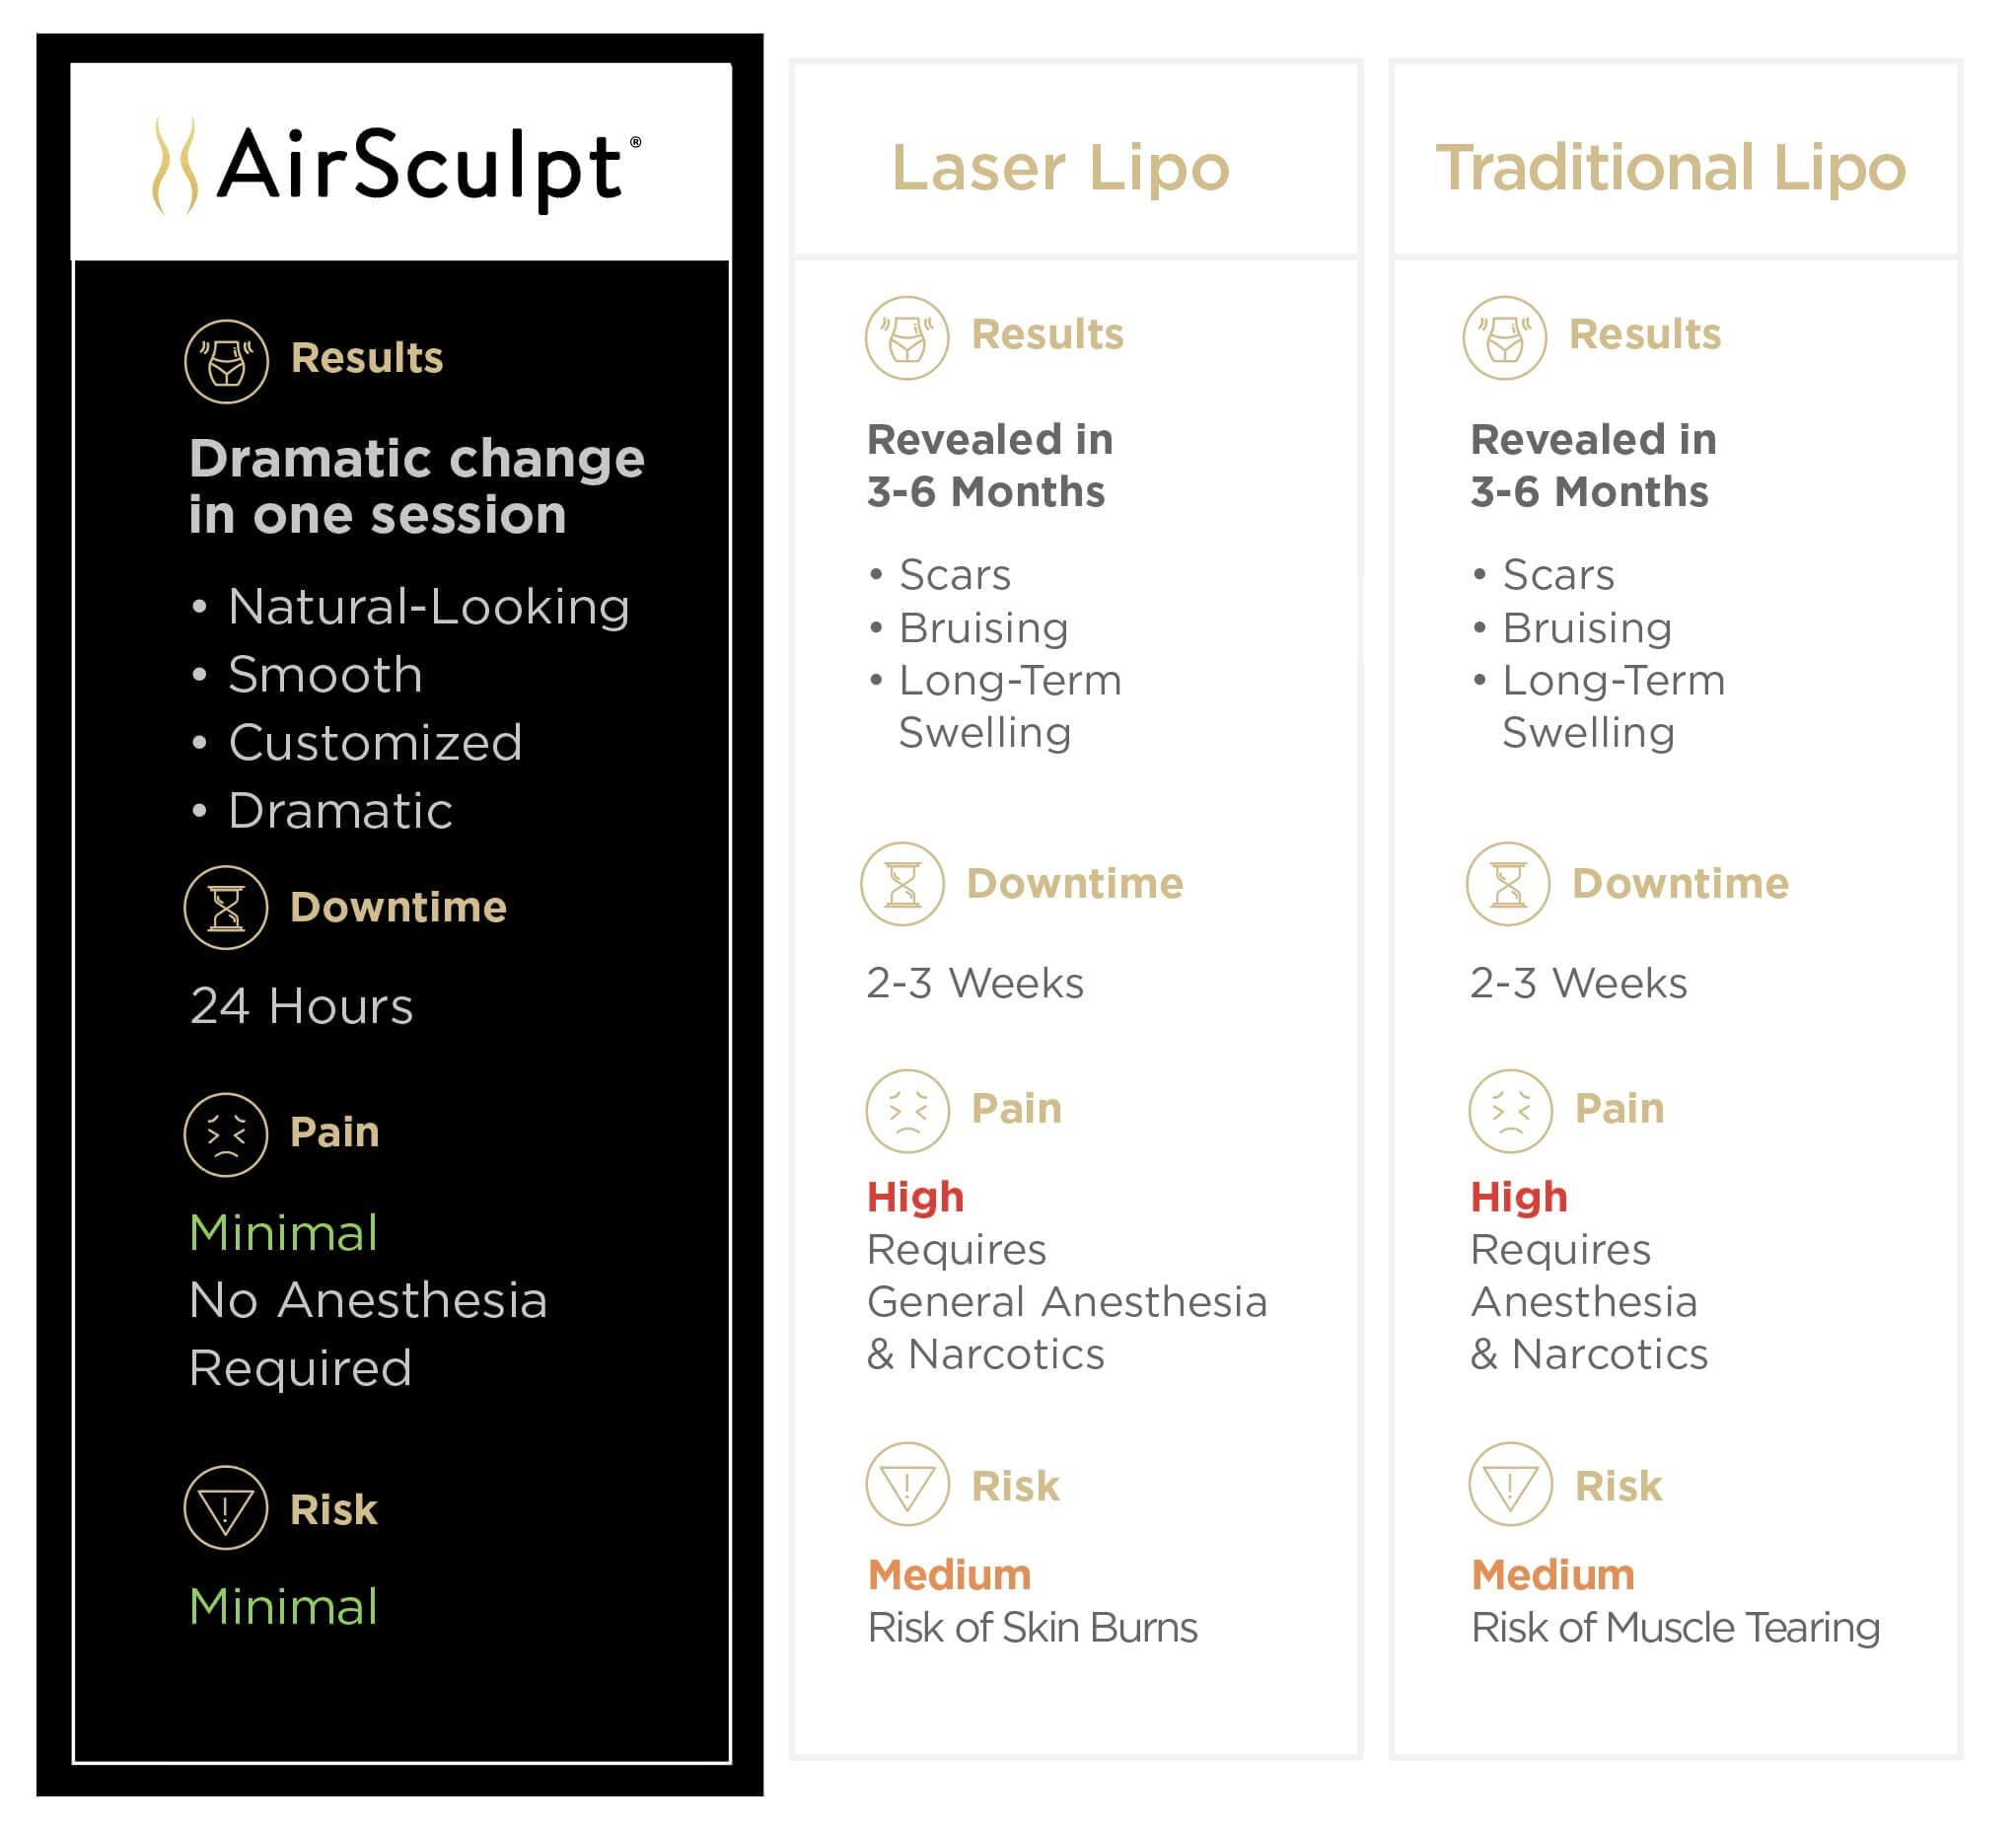 AirSculpt. vs. Traditional Liposuction